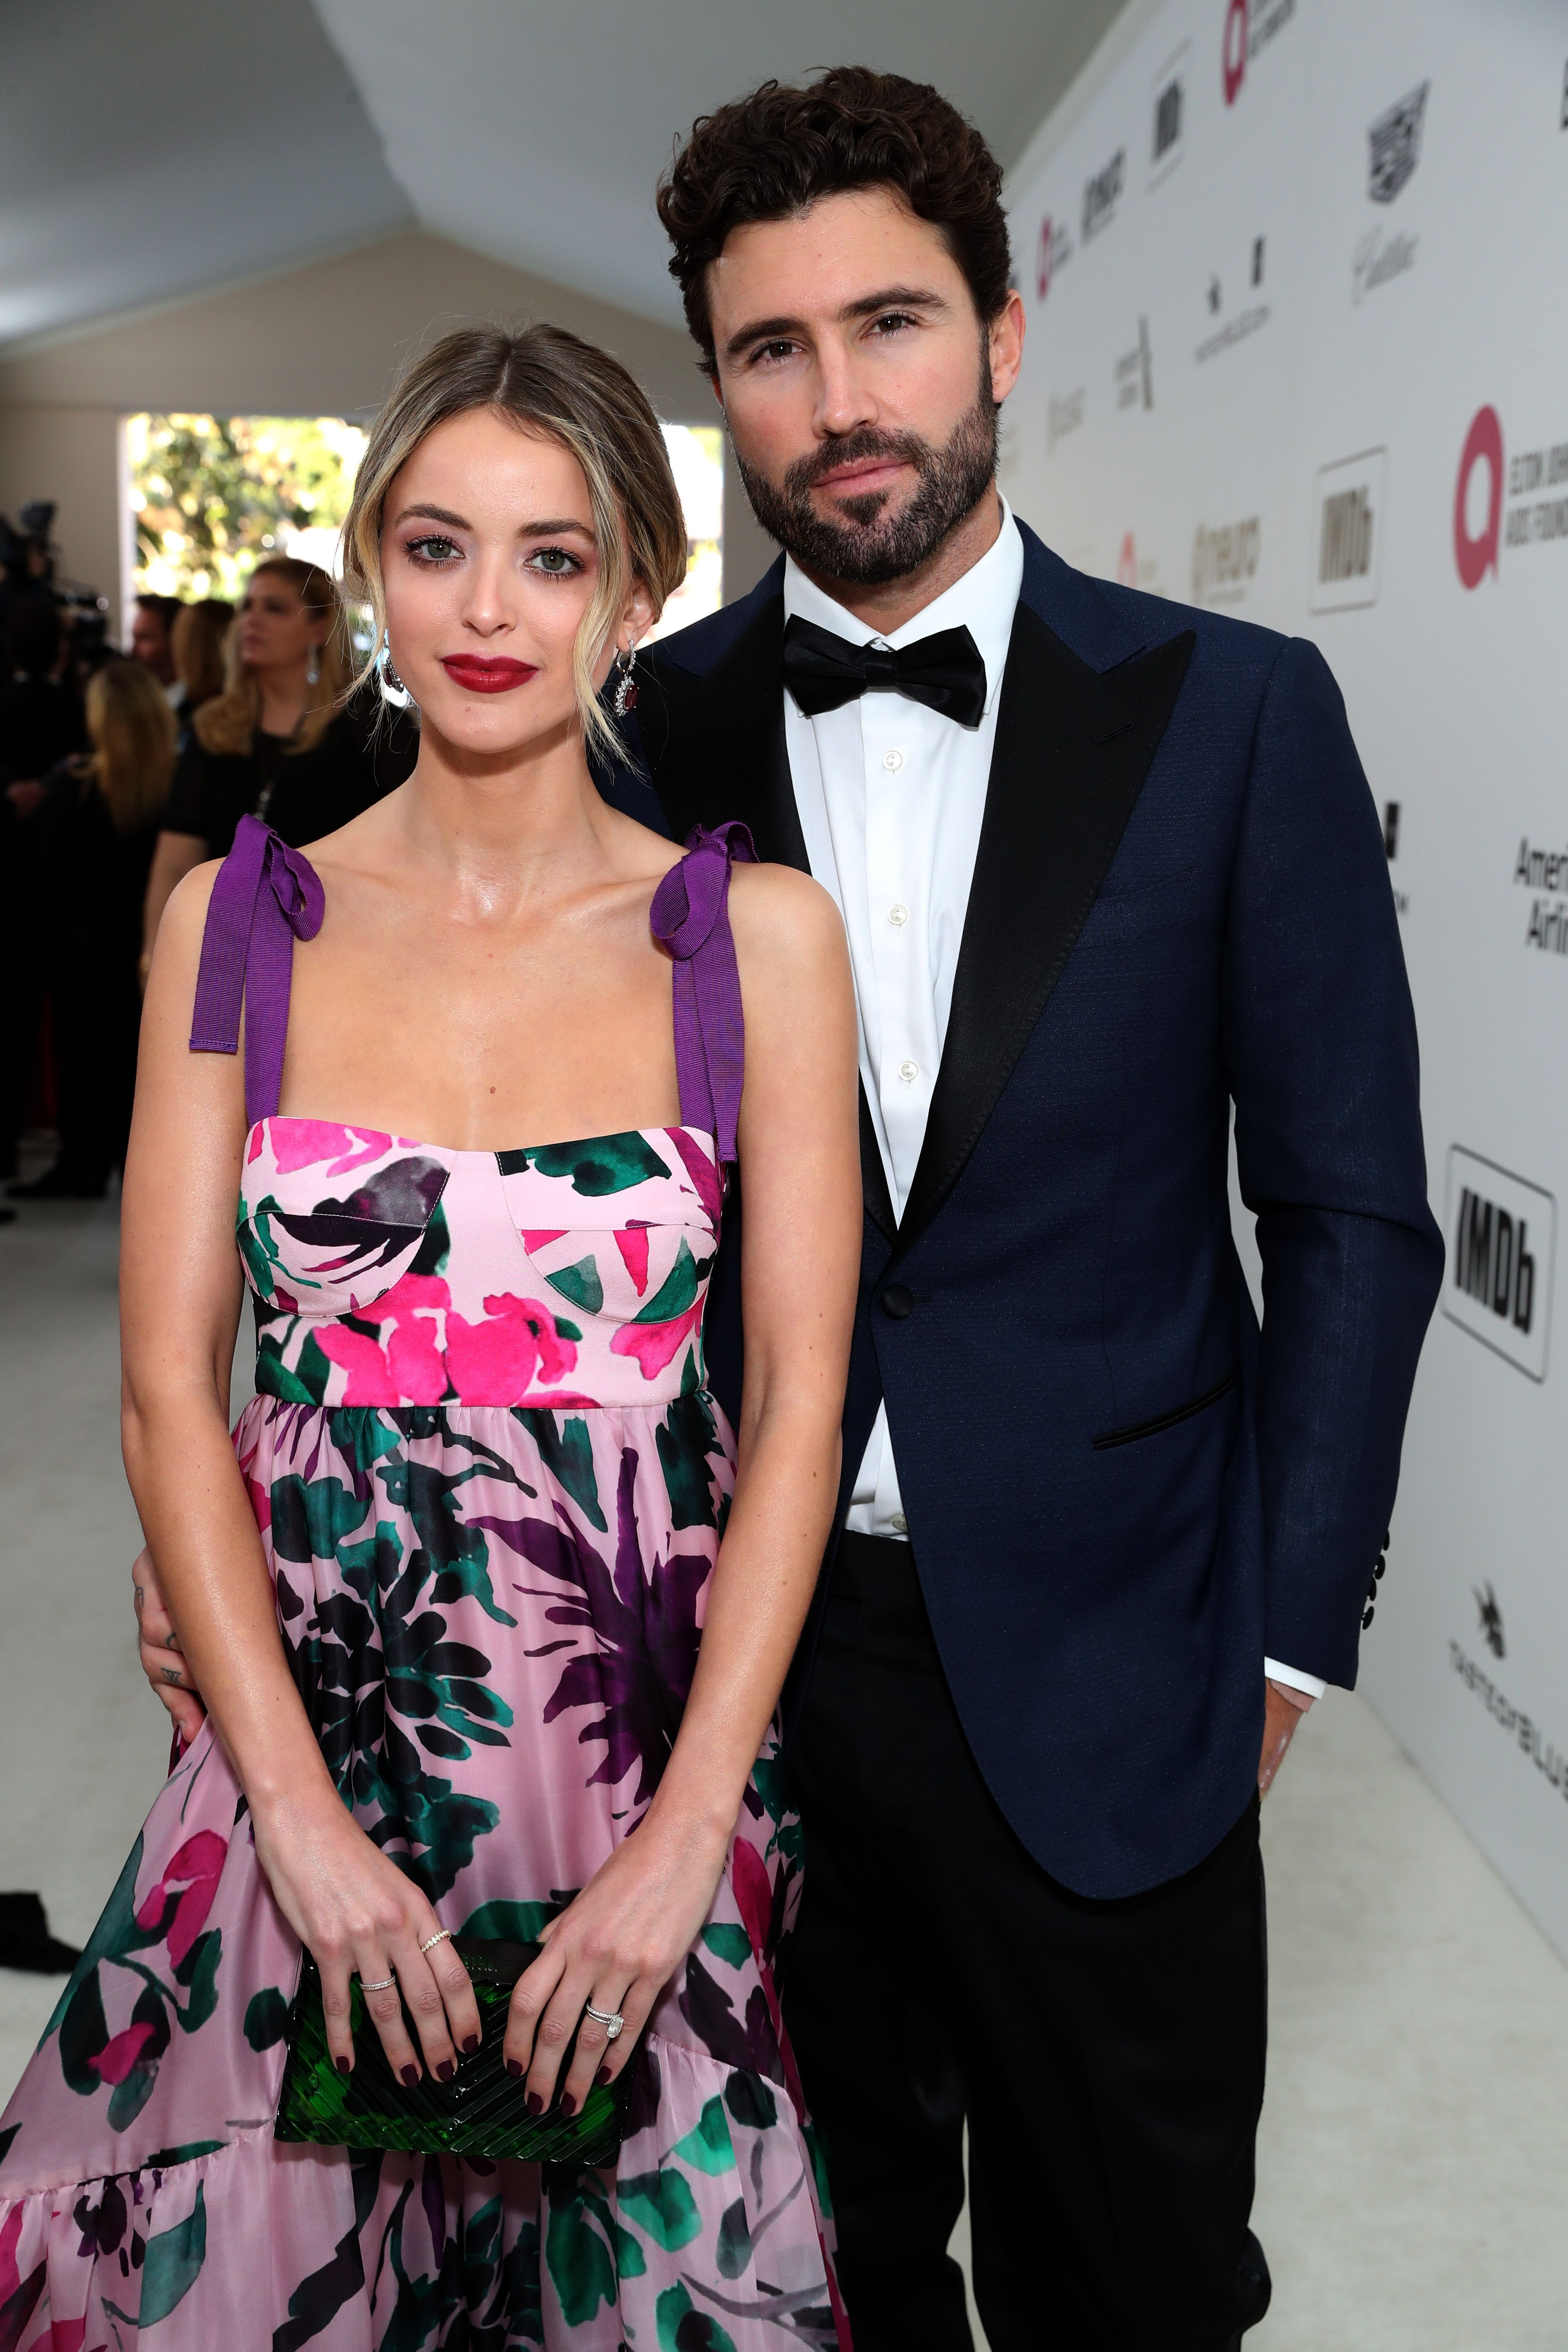 Brody Jenner Issues Statement Defending Kaitlynn Carter Following Her Pictures with Miley Cyrus